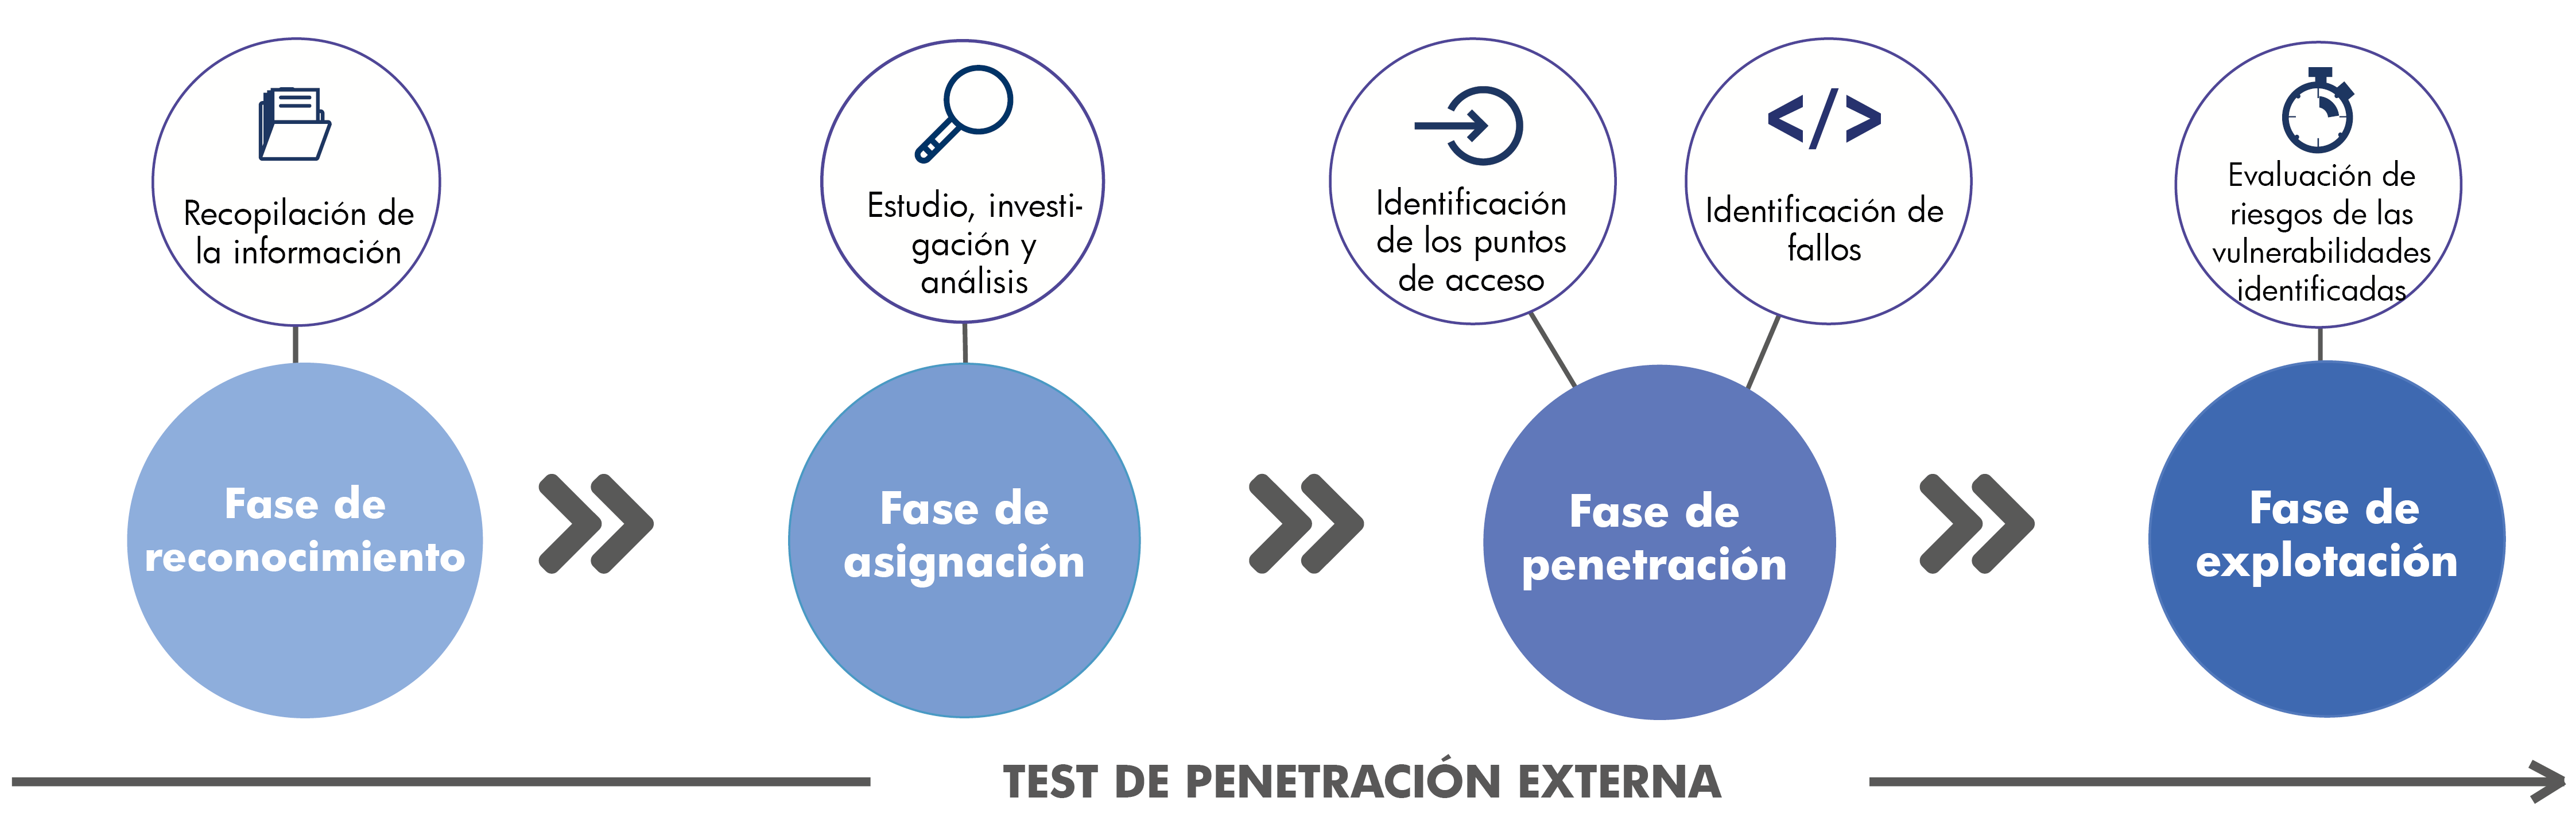 Schema test intrusion externe